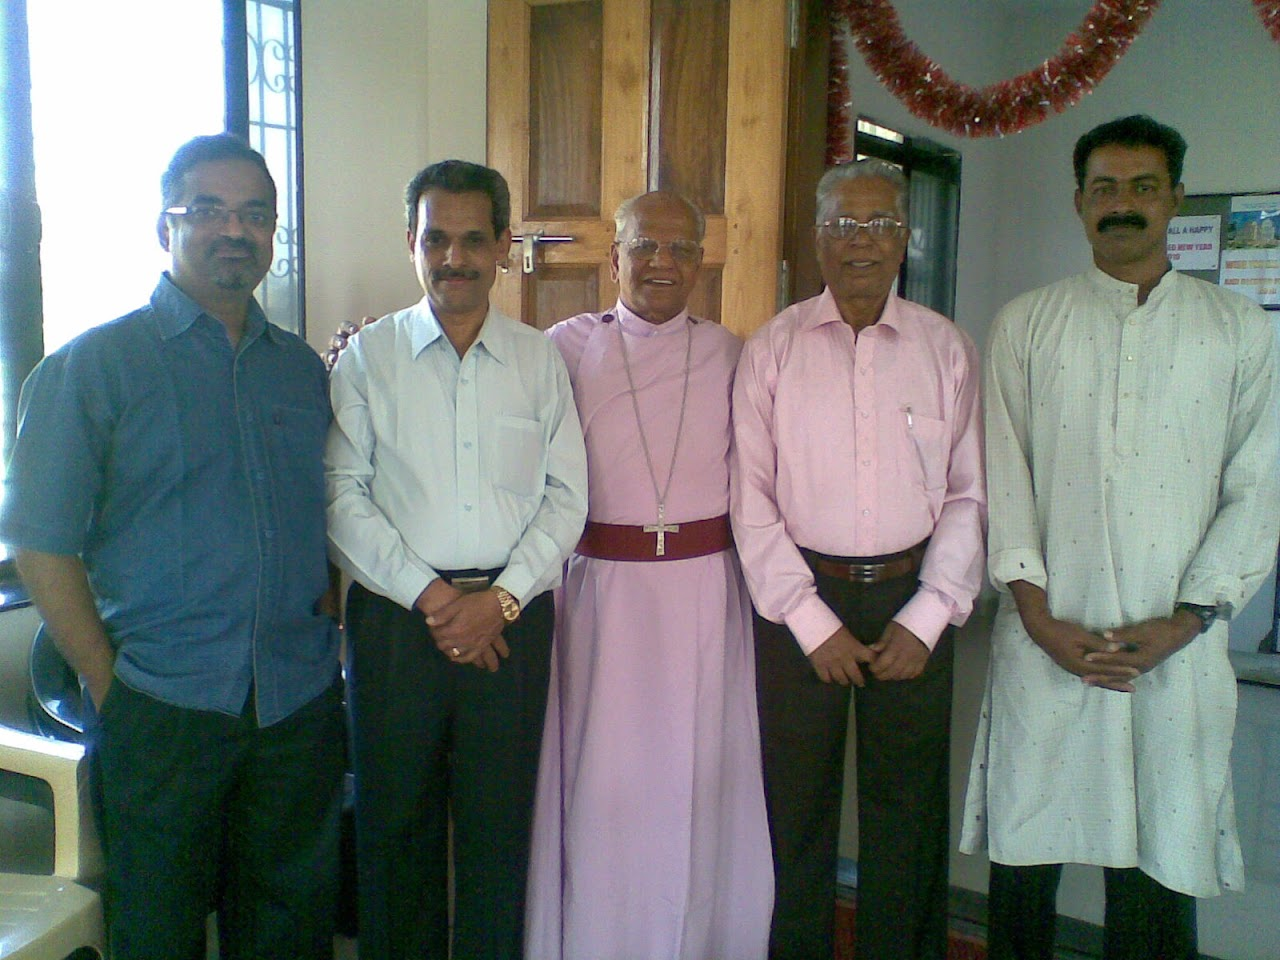 Visit of Rt. Rev. Micheal John at Vasai 2010 - Image140.jpg